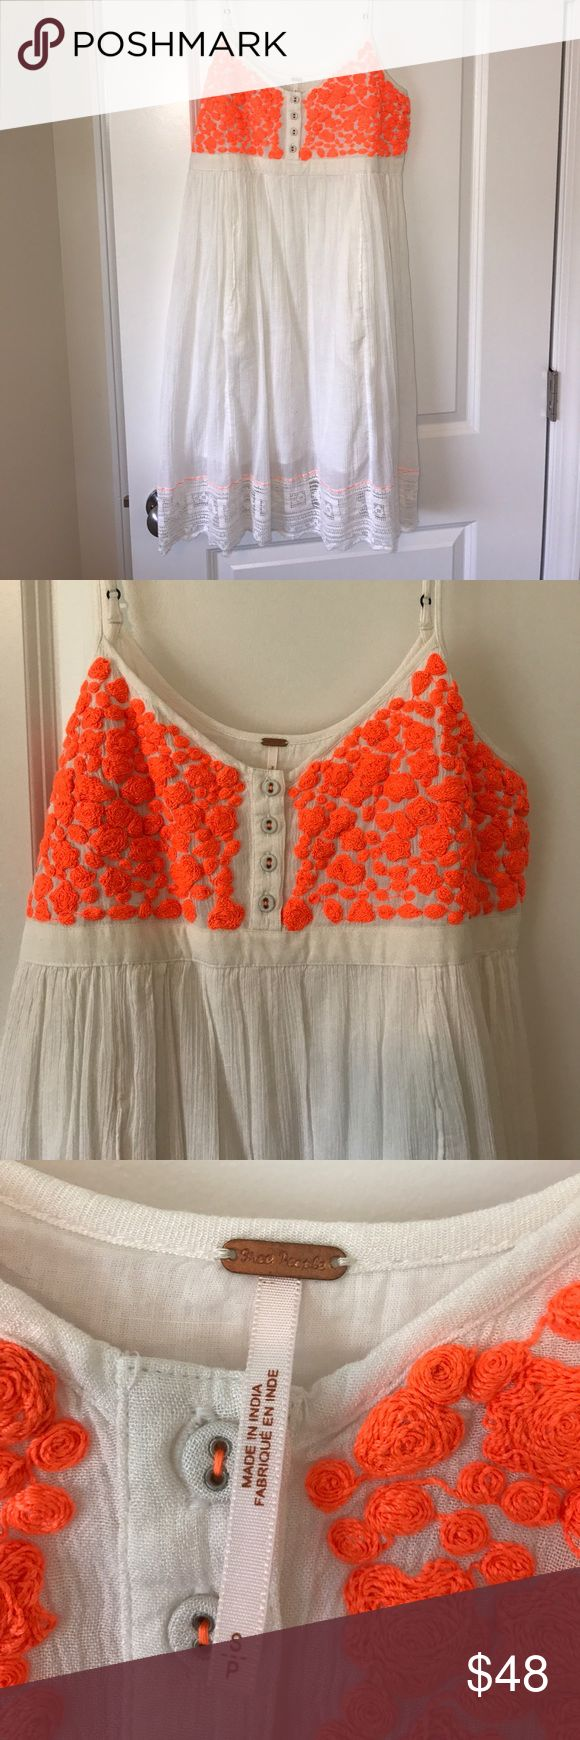 Free People white & orange dress! Free people white & bright orange sun dress! Beautiful detailing on the top with lace on the bottom. Dress has two hidden pockets in the front. Never worn, NWOT. Free People Dresses Midi